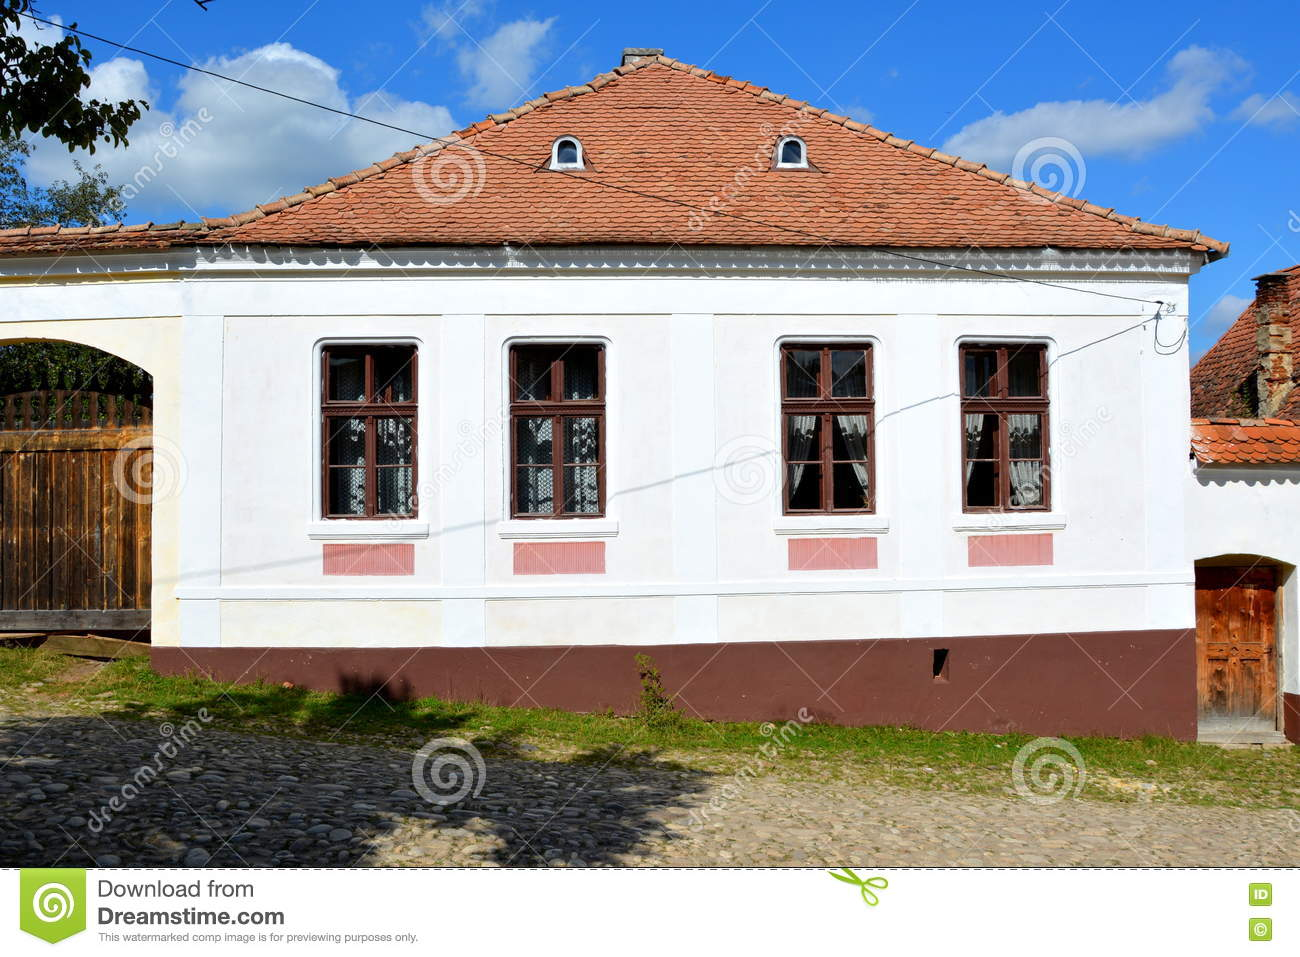 Bought cartoons illustrations vector stock images 423 pictures to download from - Saxon style houses in transylvania ...